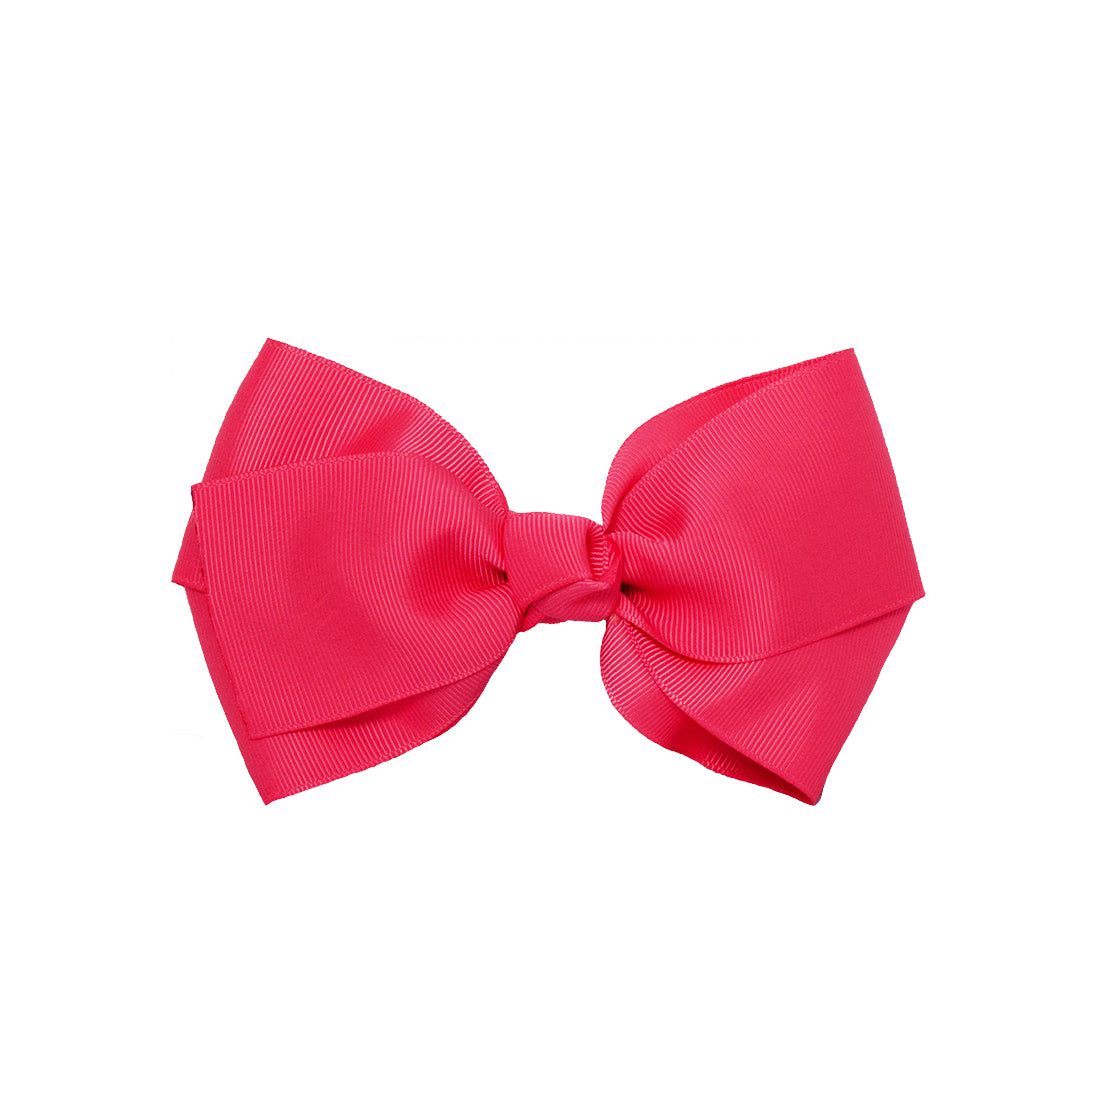 Mia® Spirit Grosgrain Ribbon Bow Barrette - large size - hot pink color - designed by #MiaKaminski of Mia Beauty